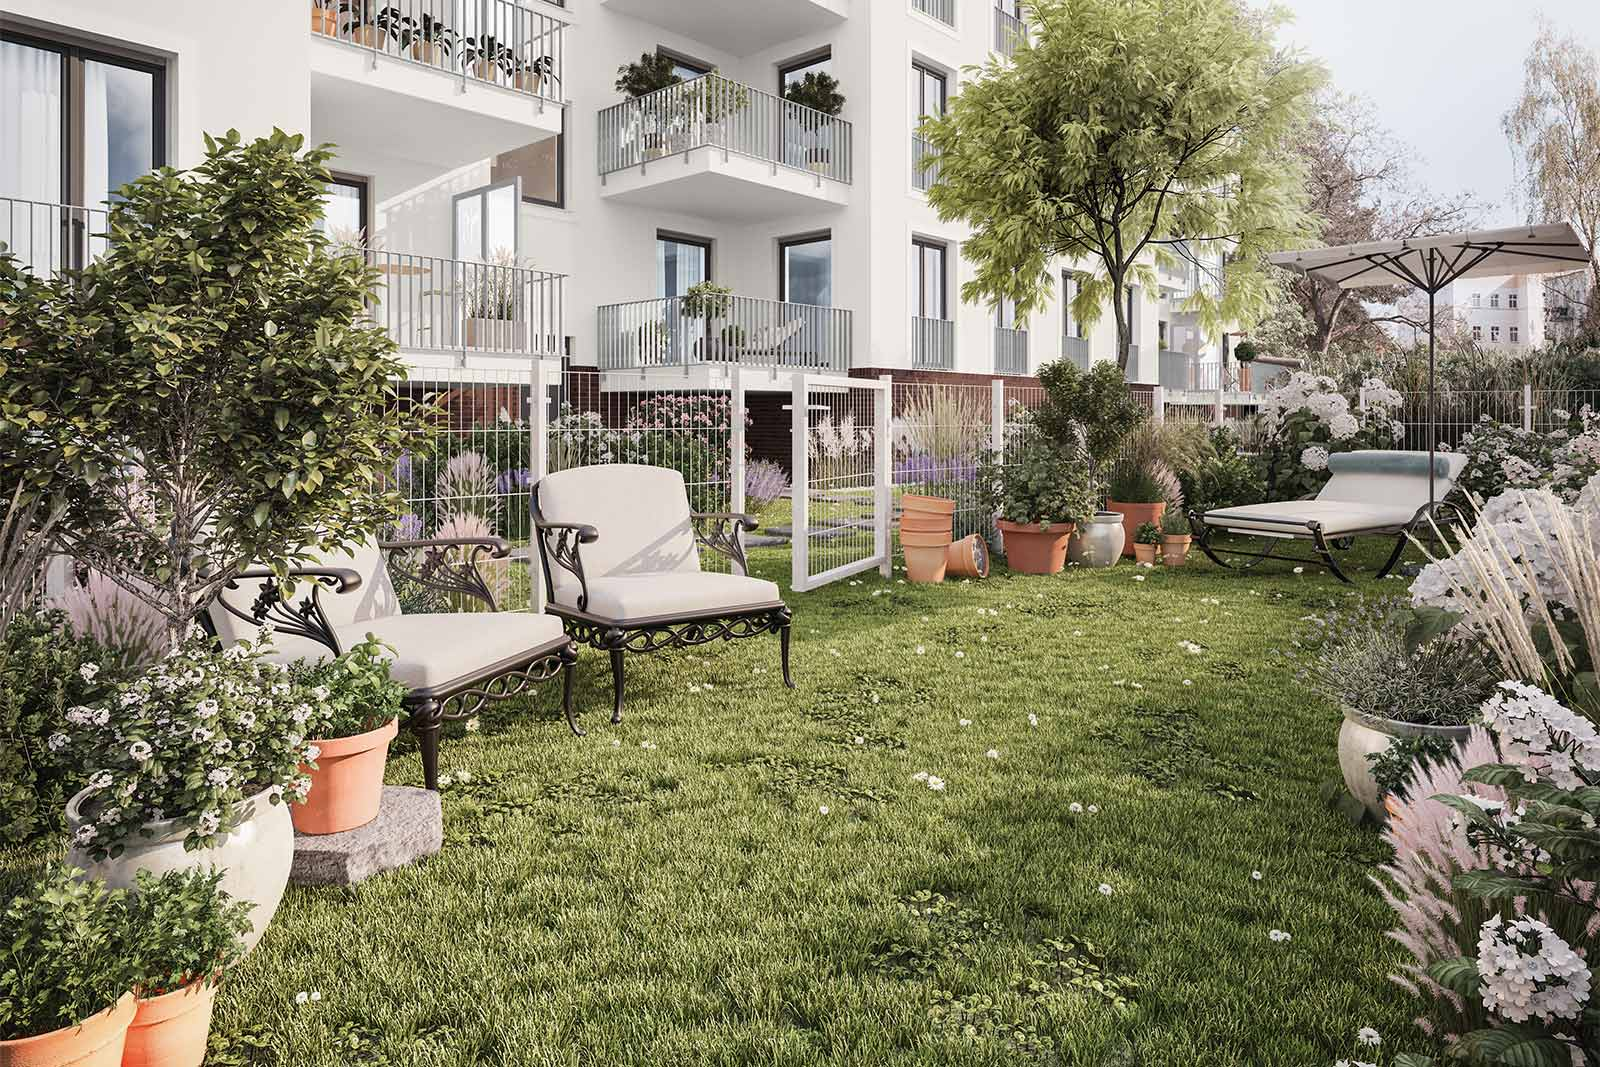 Garden plots in Berlin: separate private gardens to purchase on site